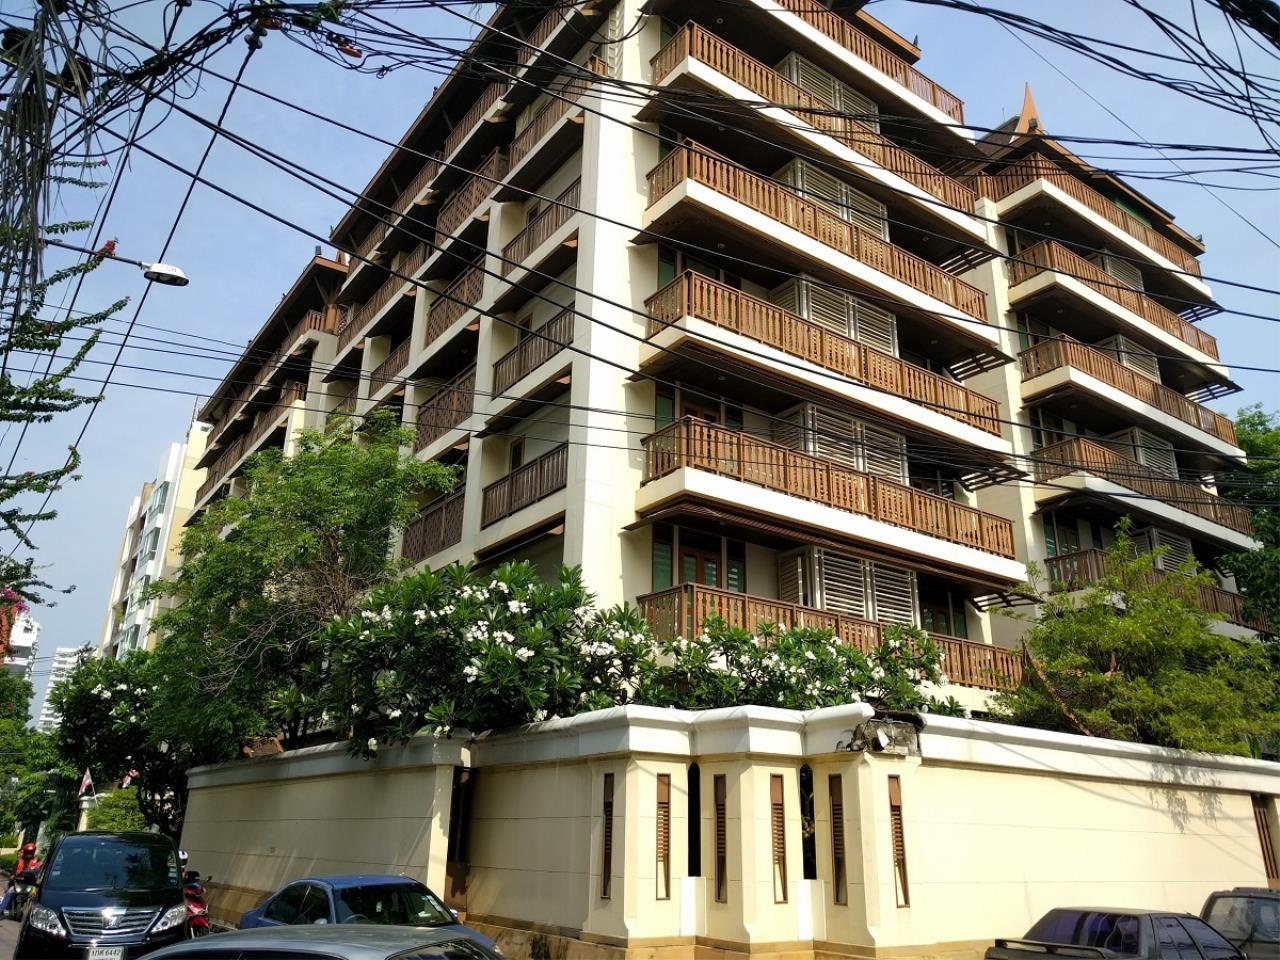 RE/MAX CondoDee Agency's Thai Elegance Luxury Condominium - Entire Building for Sale 1